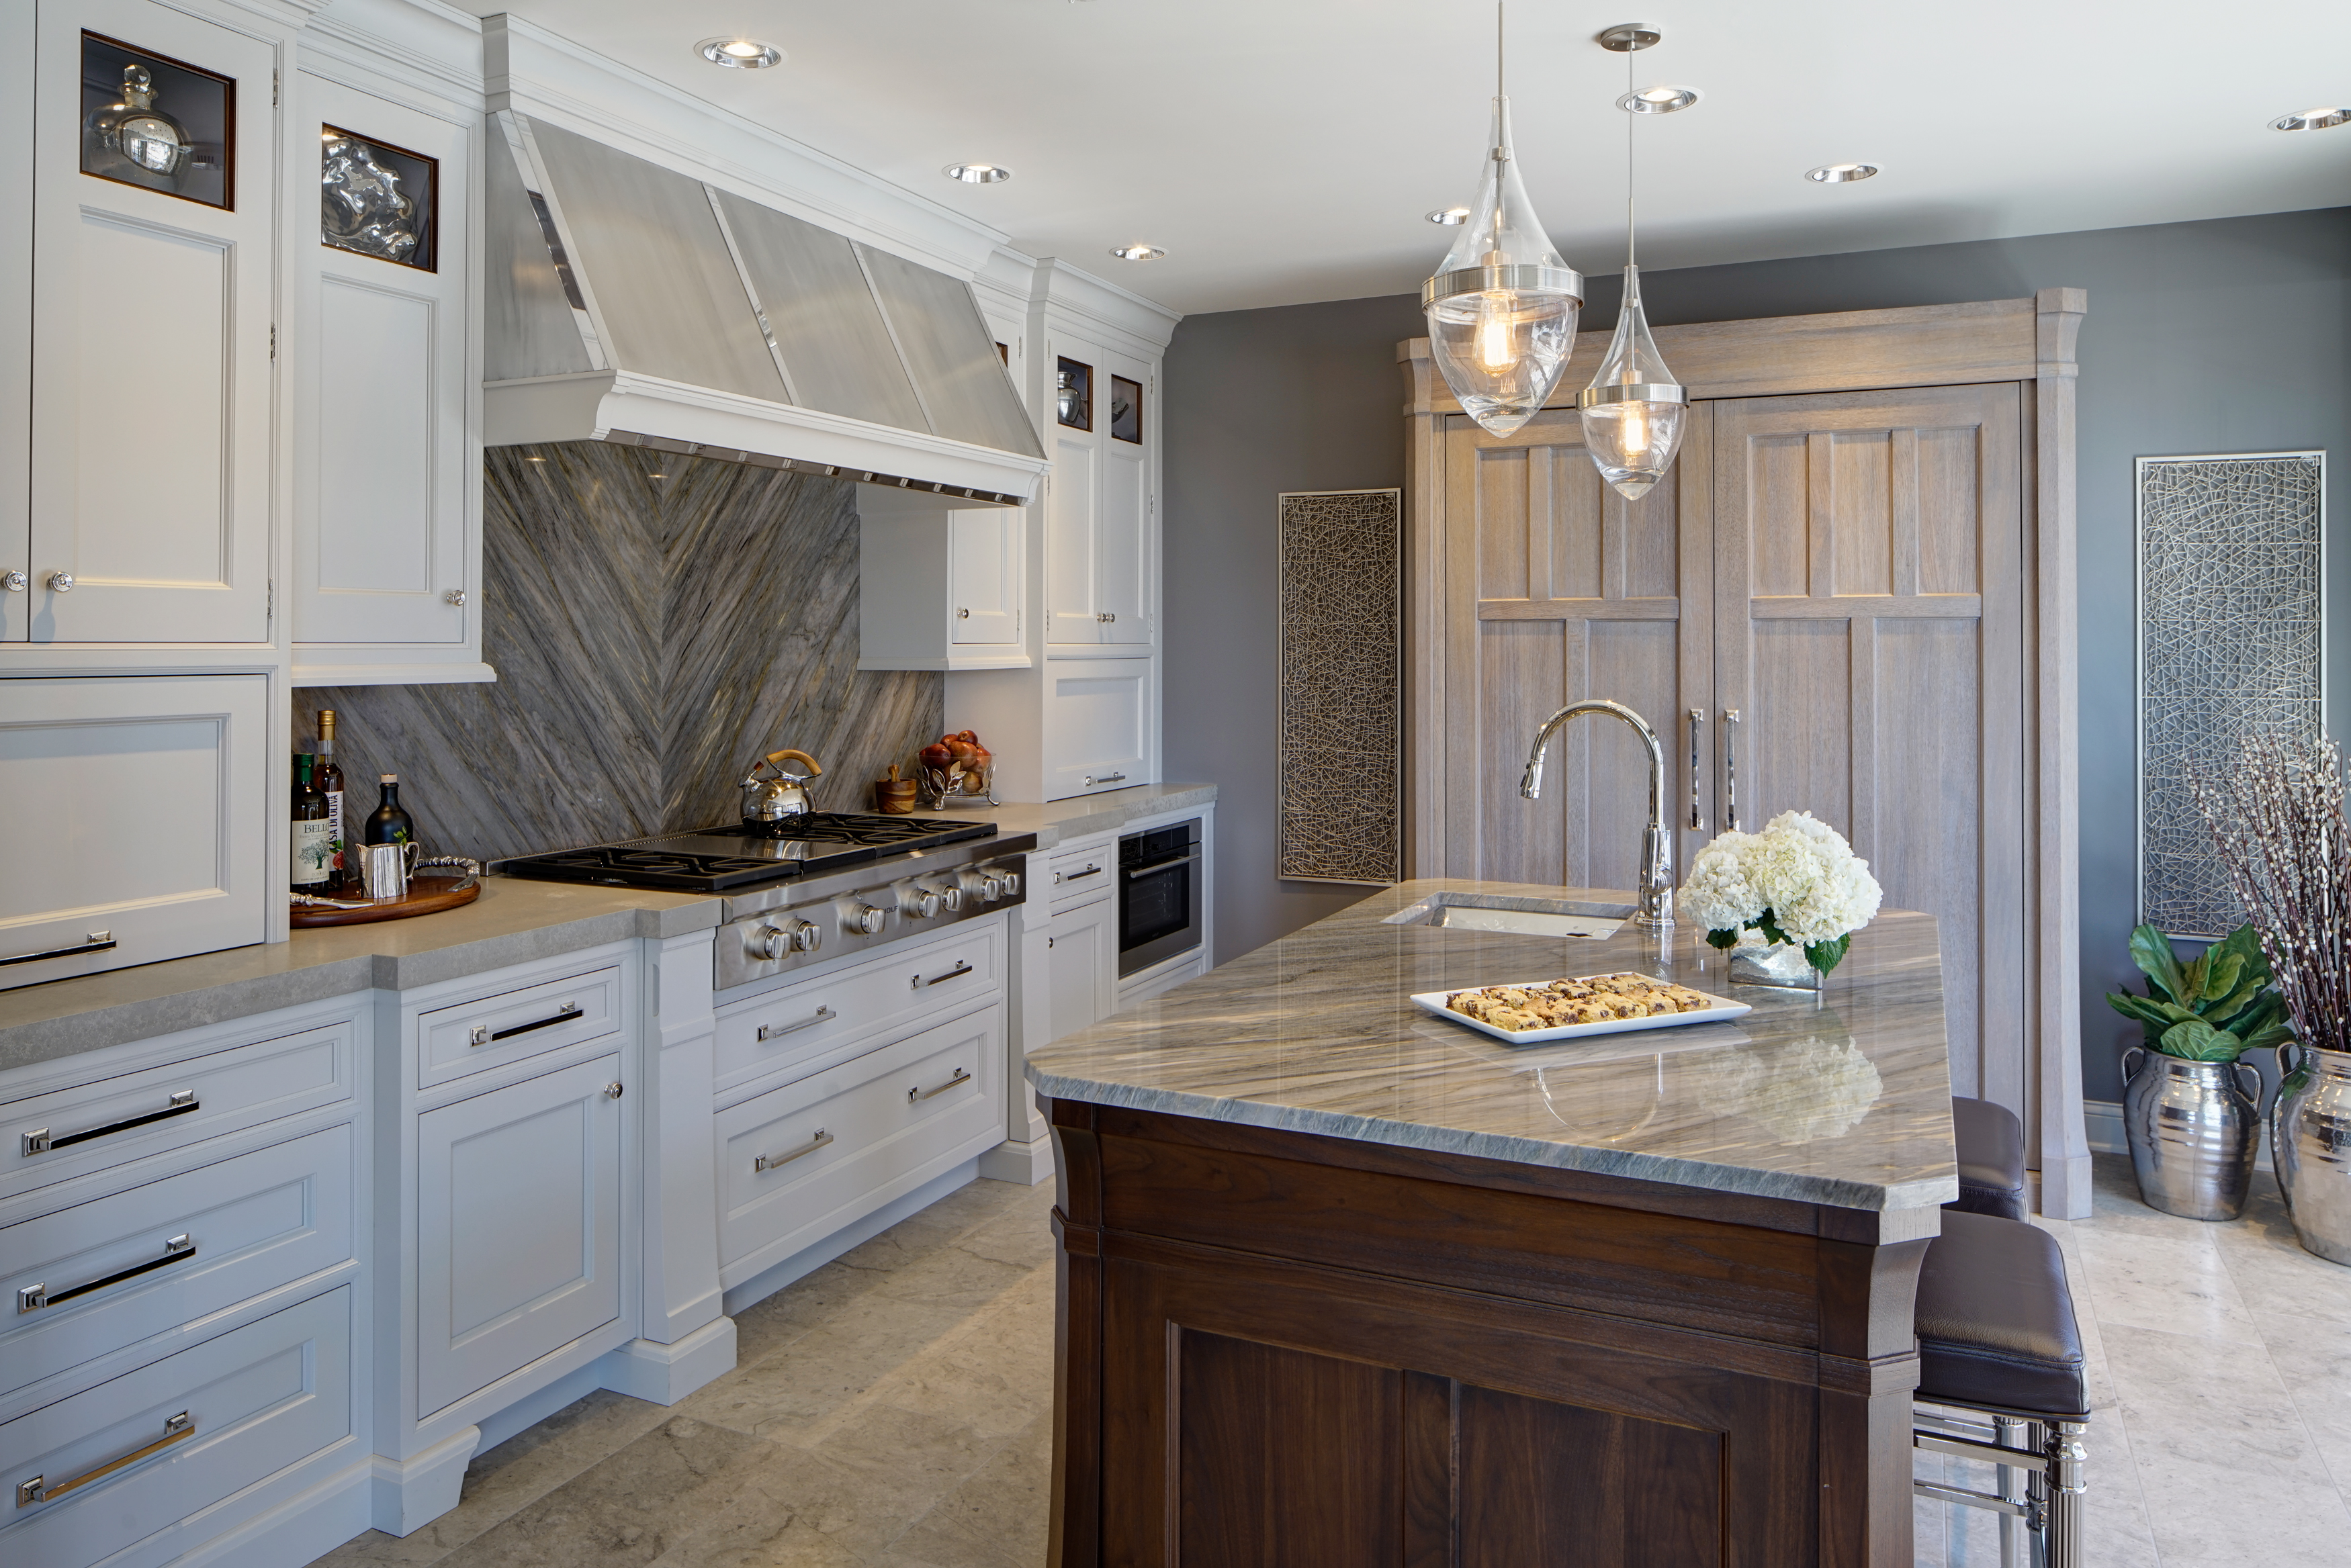 Rutt Handcrafted Cabinetry Expands Presence In Midwest